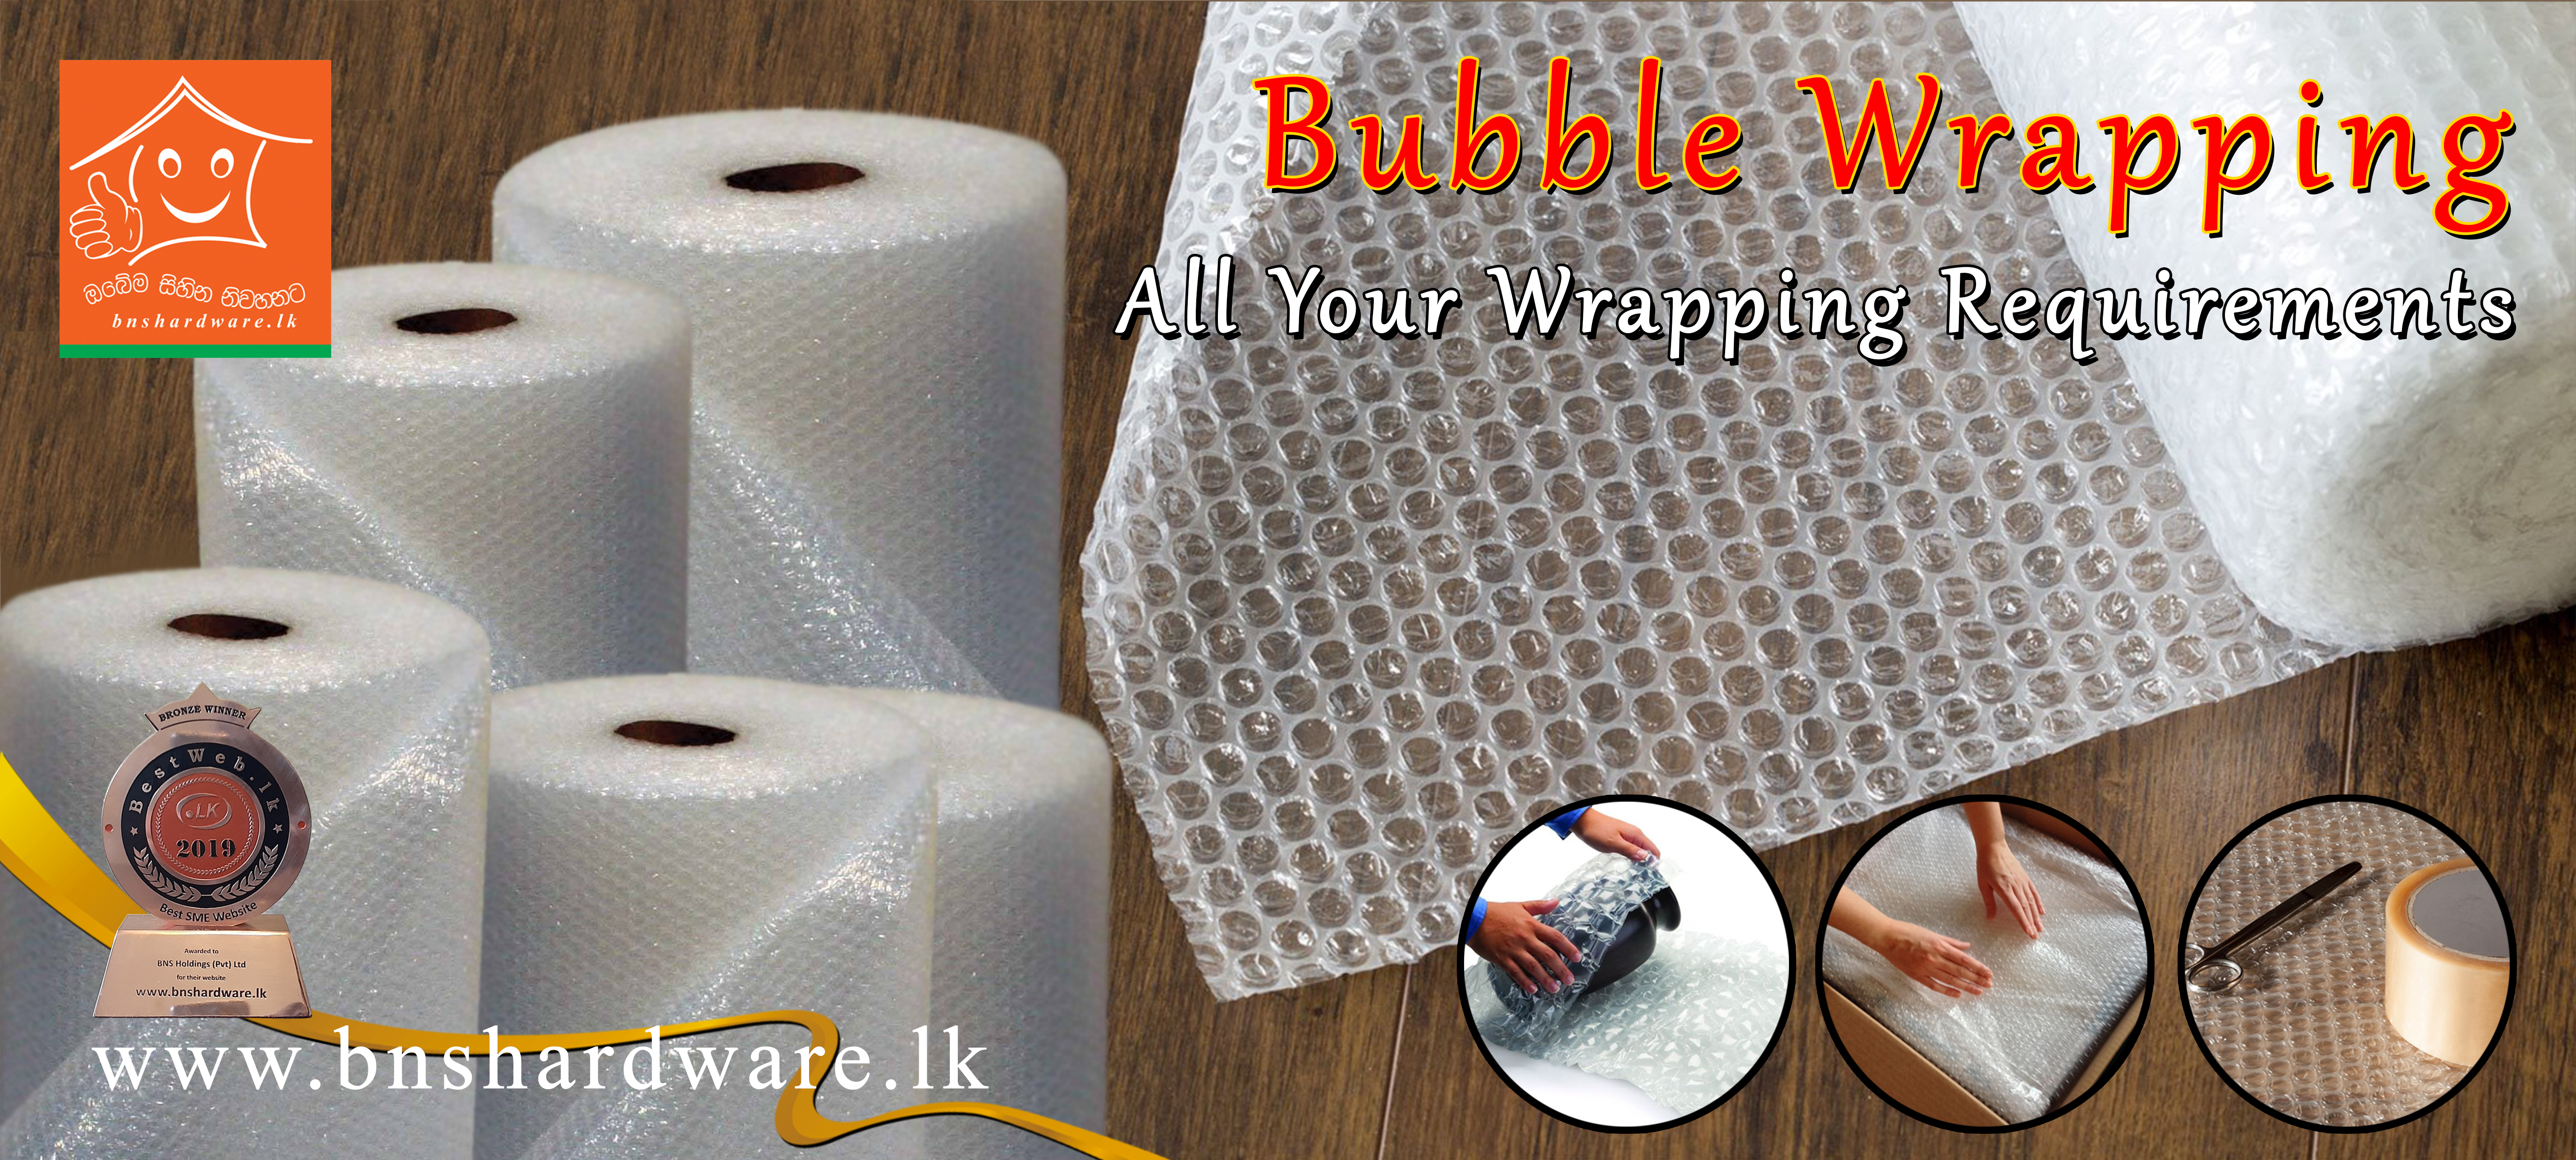 Bubble Wrapping